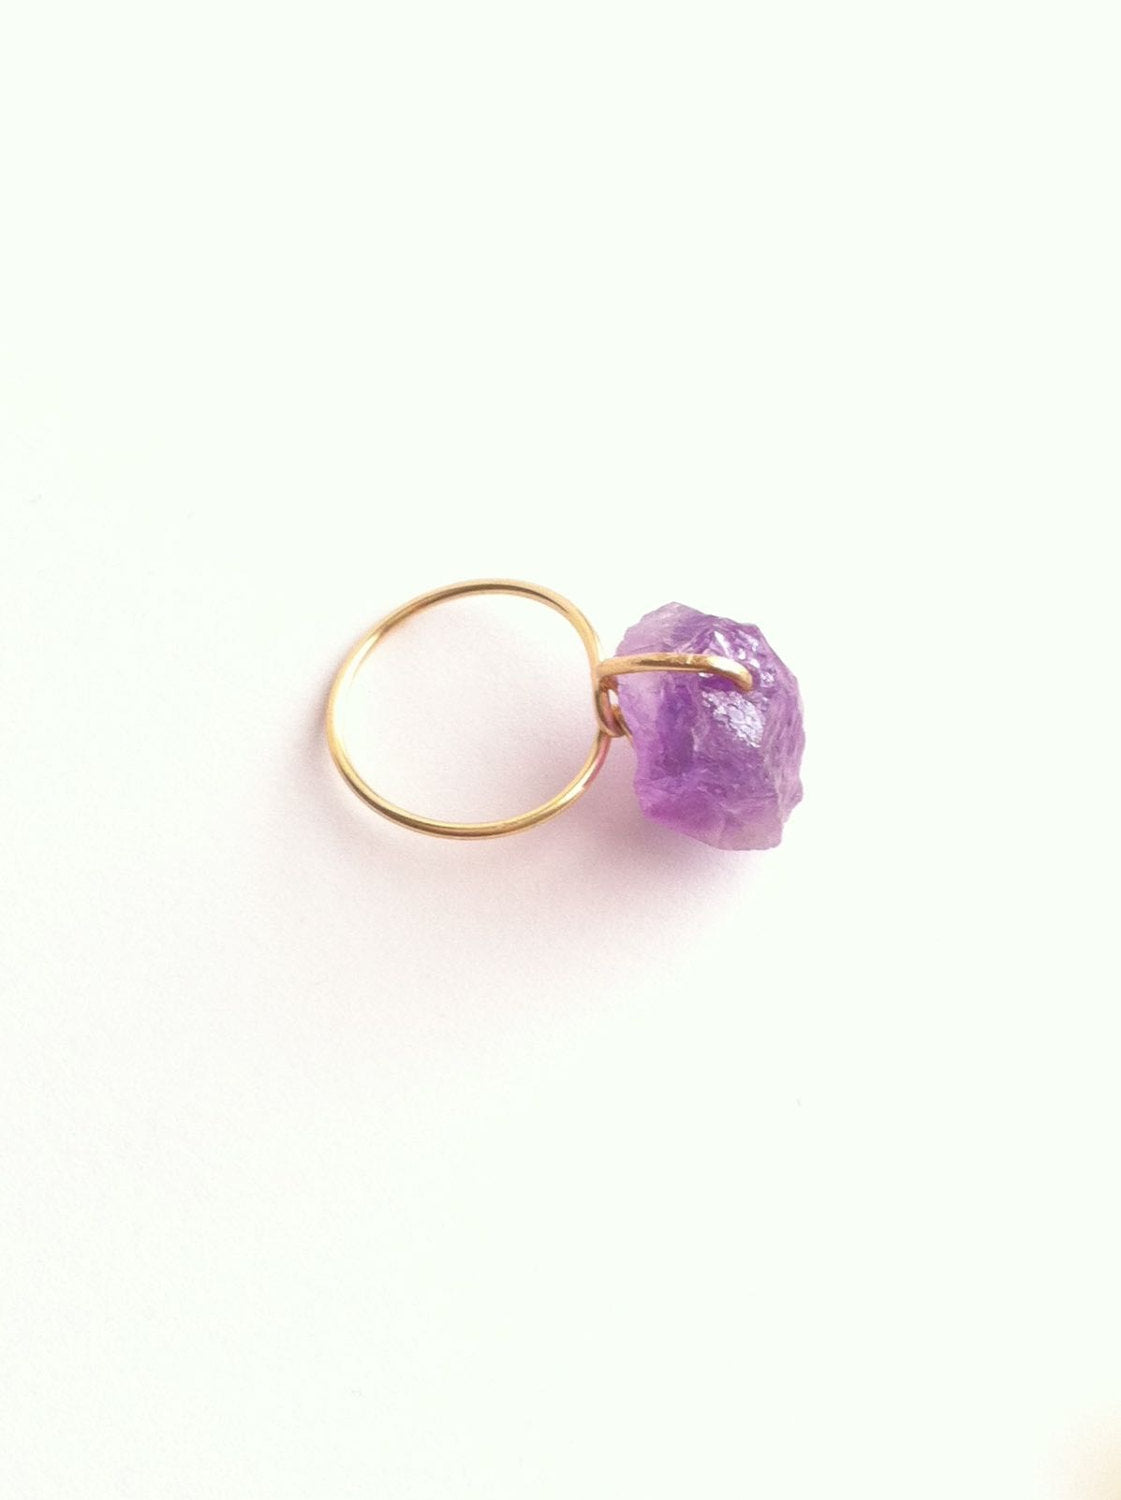 Raw Amethyst Rough Gemstone Thin Band Ring | IB Jewelry